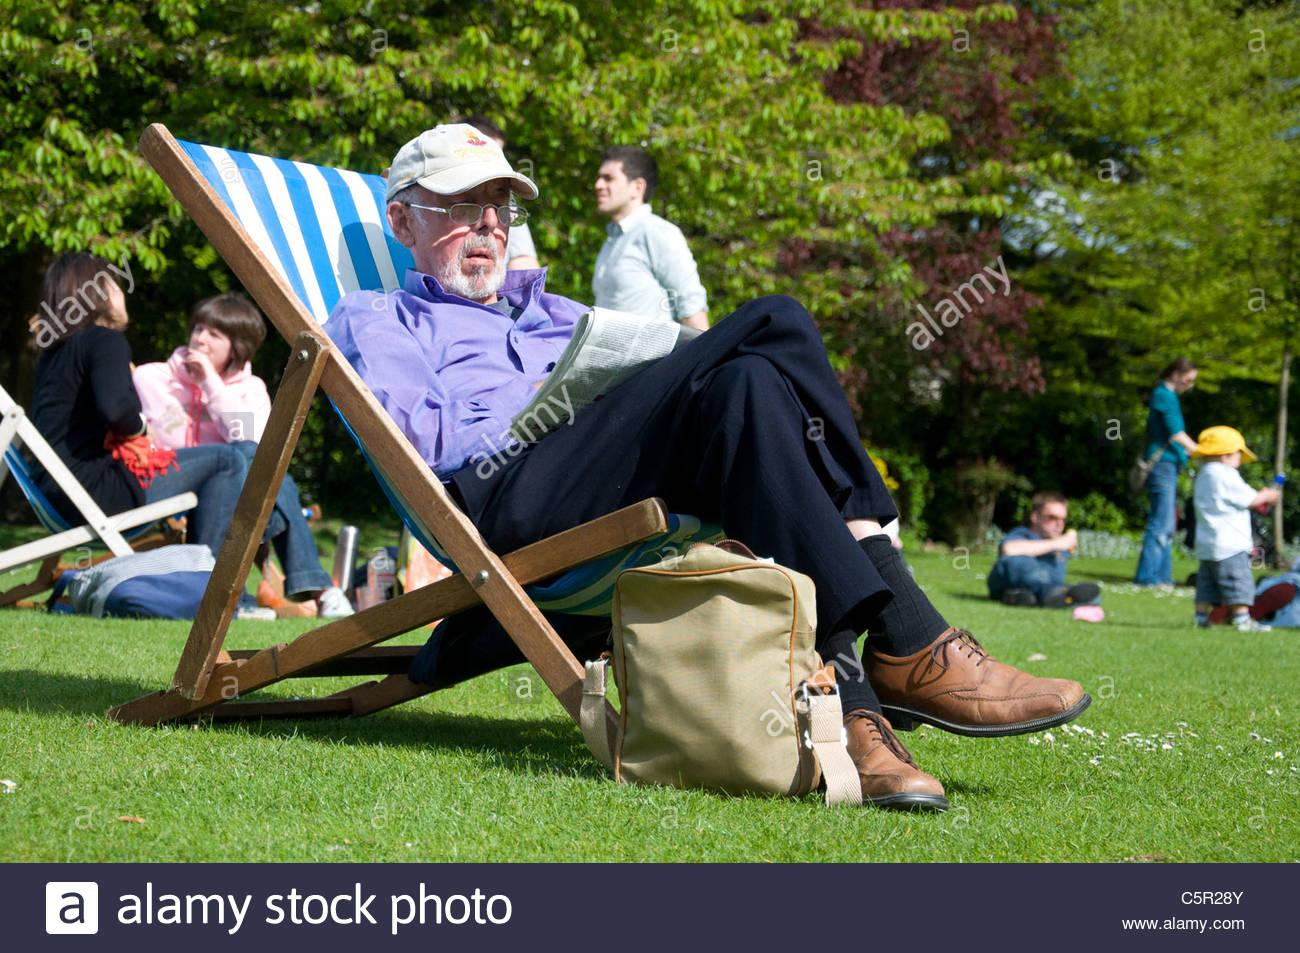 large.older-man-sleeping-on-a-deckchair-in-park-bath-england-C5R28Y.jpg.75c32fc63079289e2a8effea02f68c52.jpg